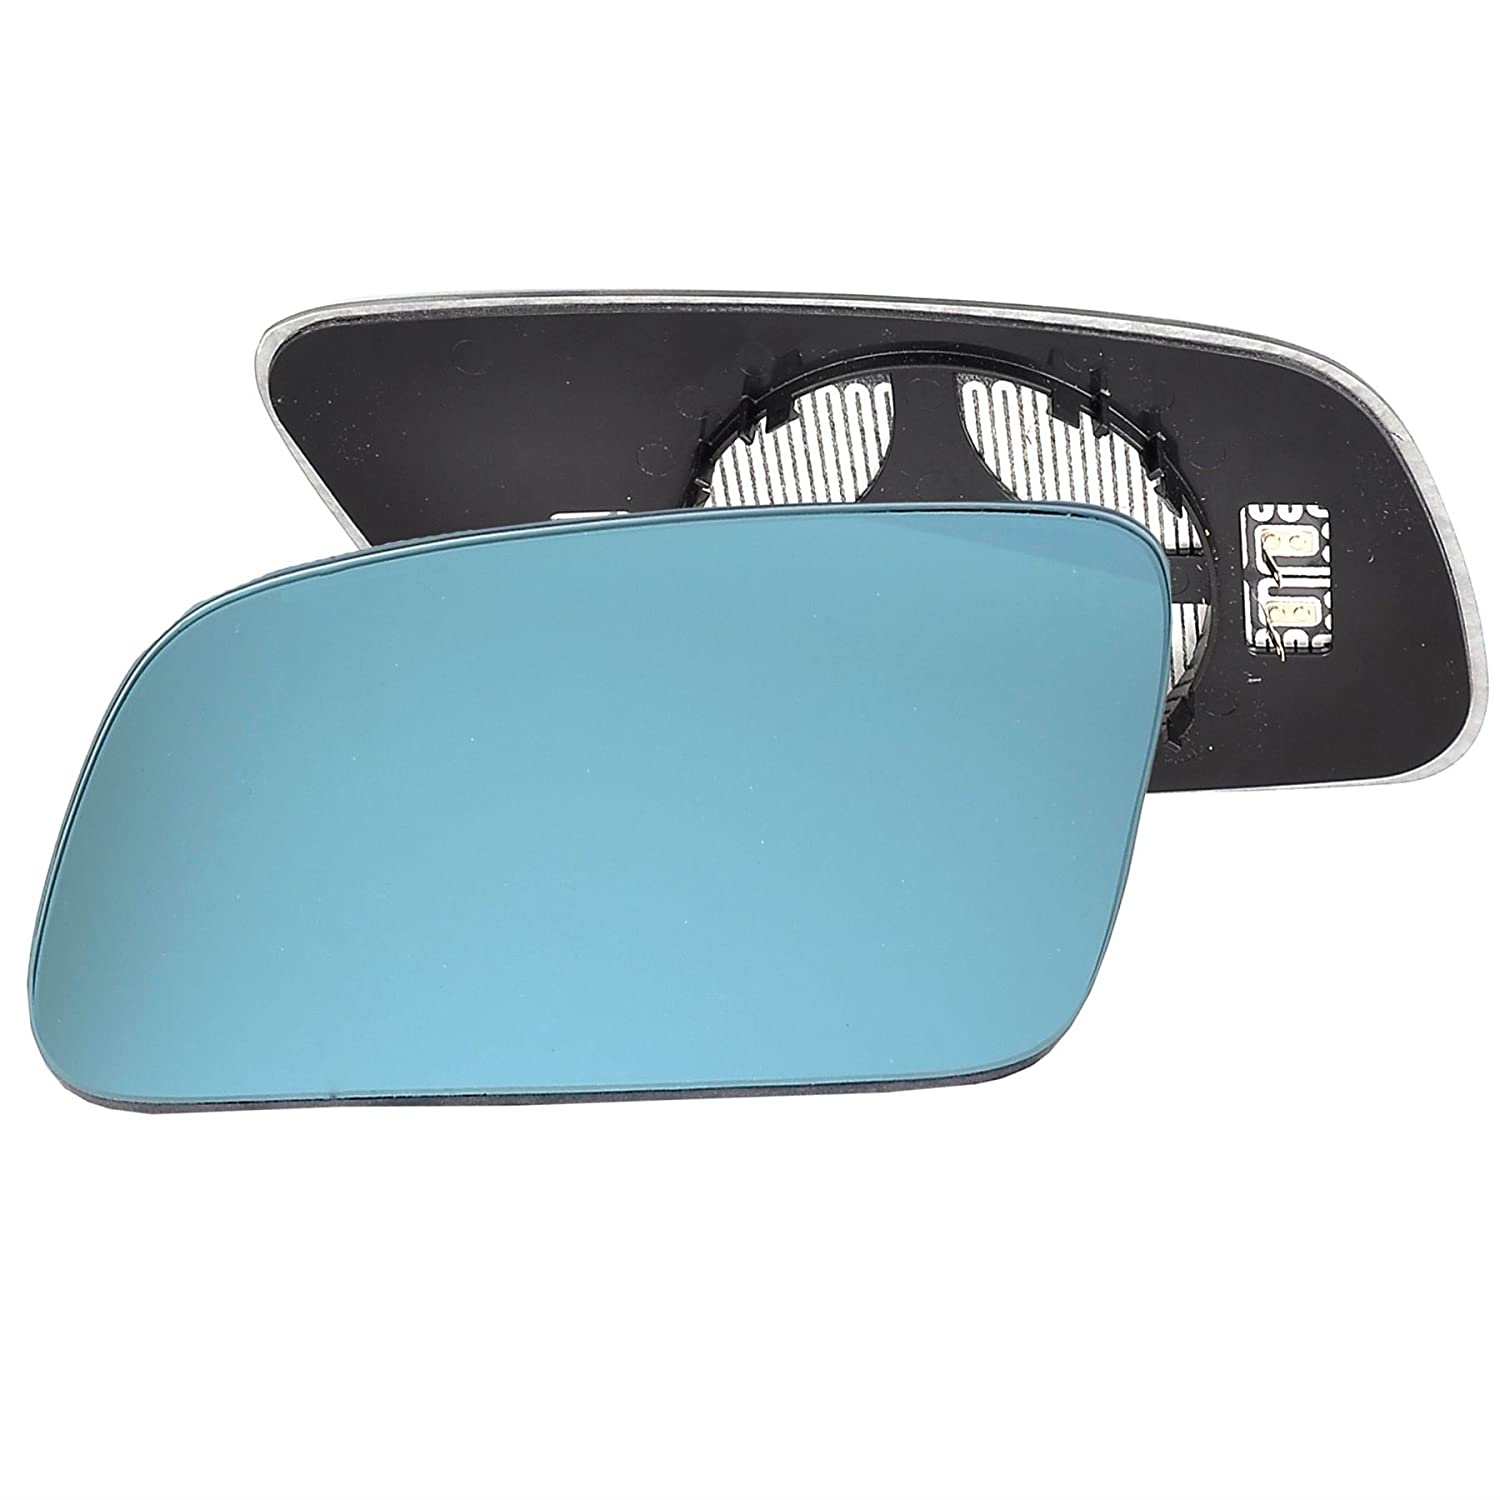 Passenger left hand side Heated wing door Blue mirror glass with backing plate #C-BHY/L-AIA300 [Clip On]